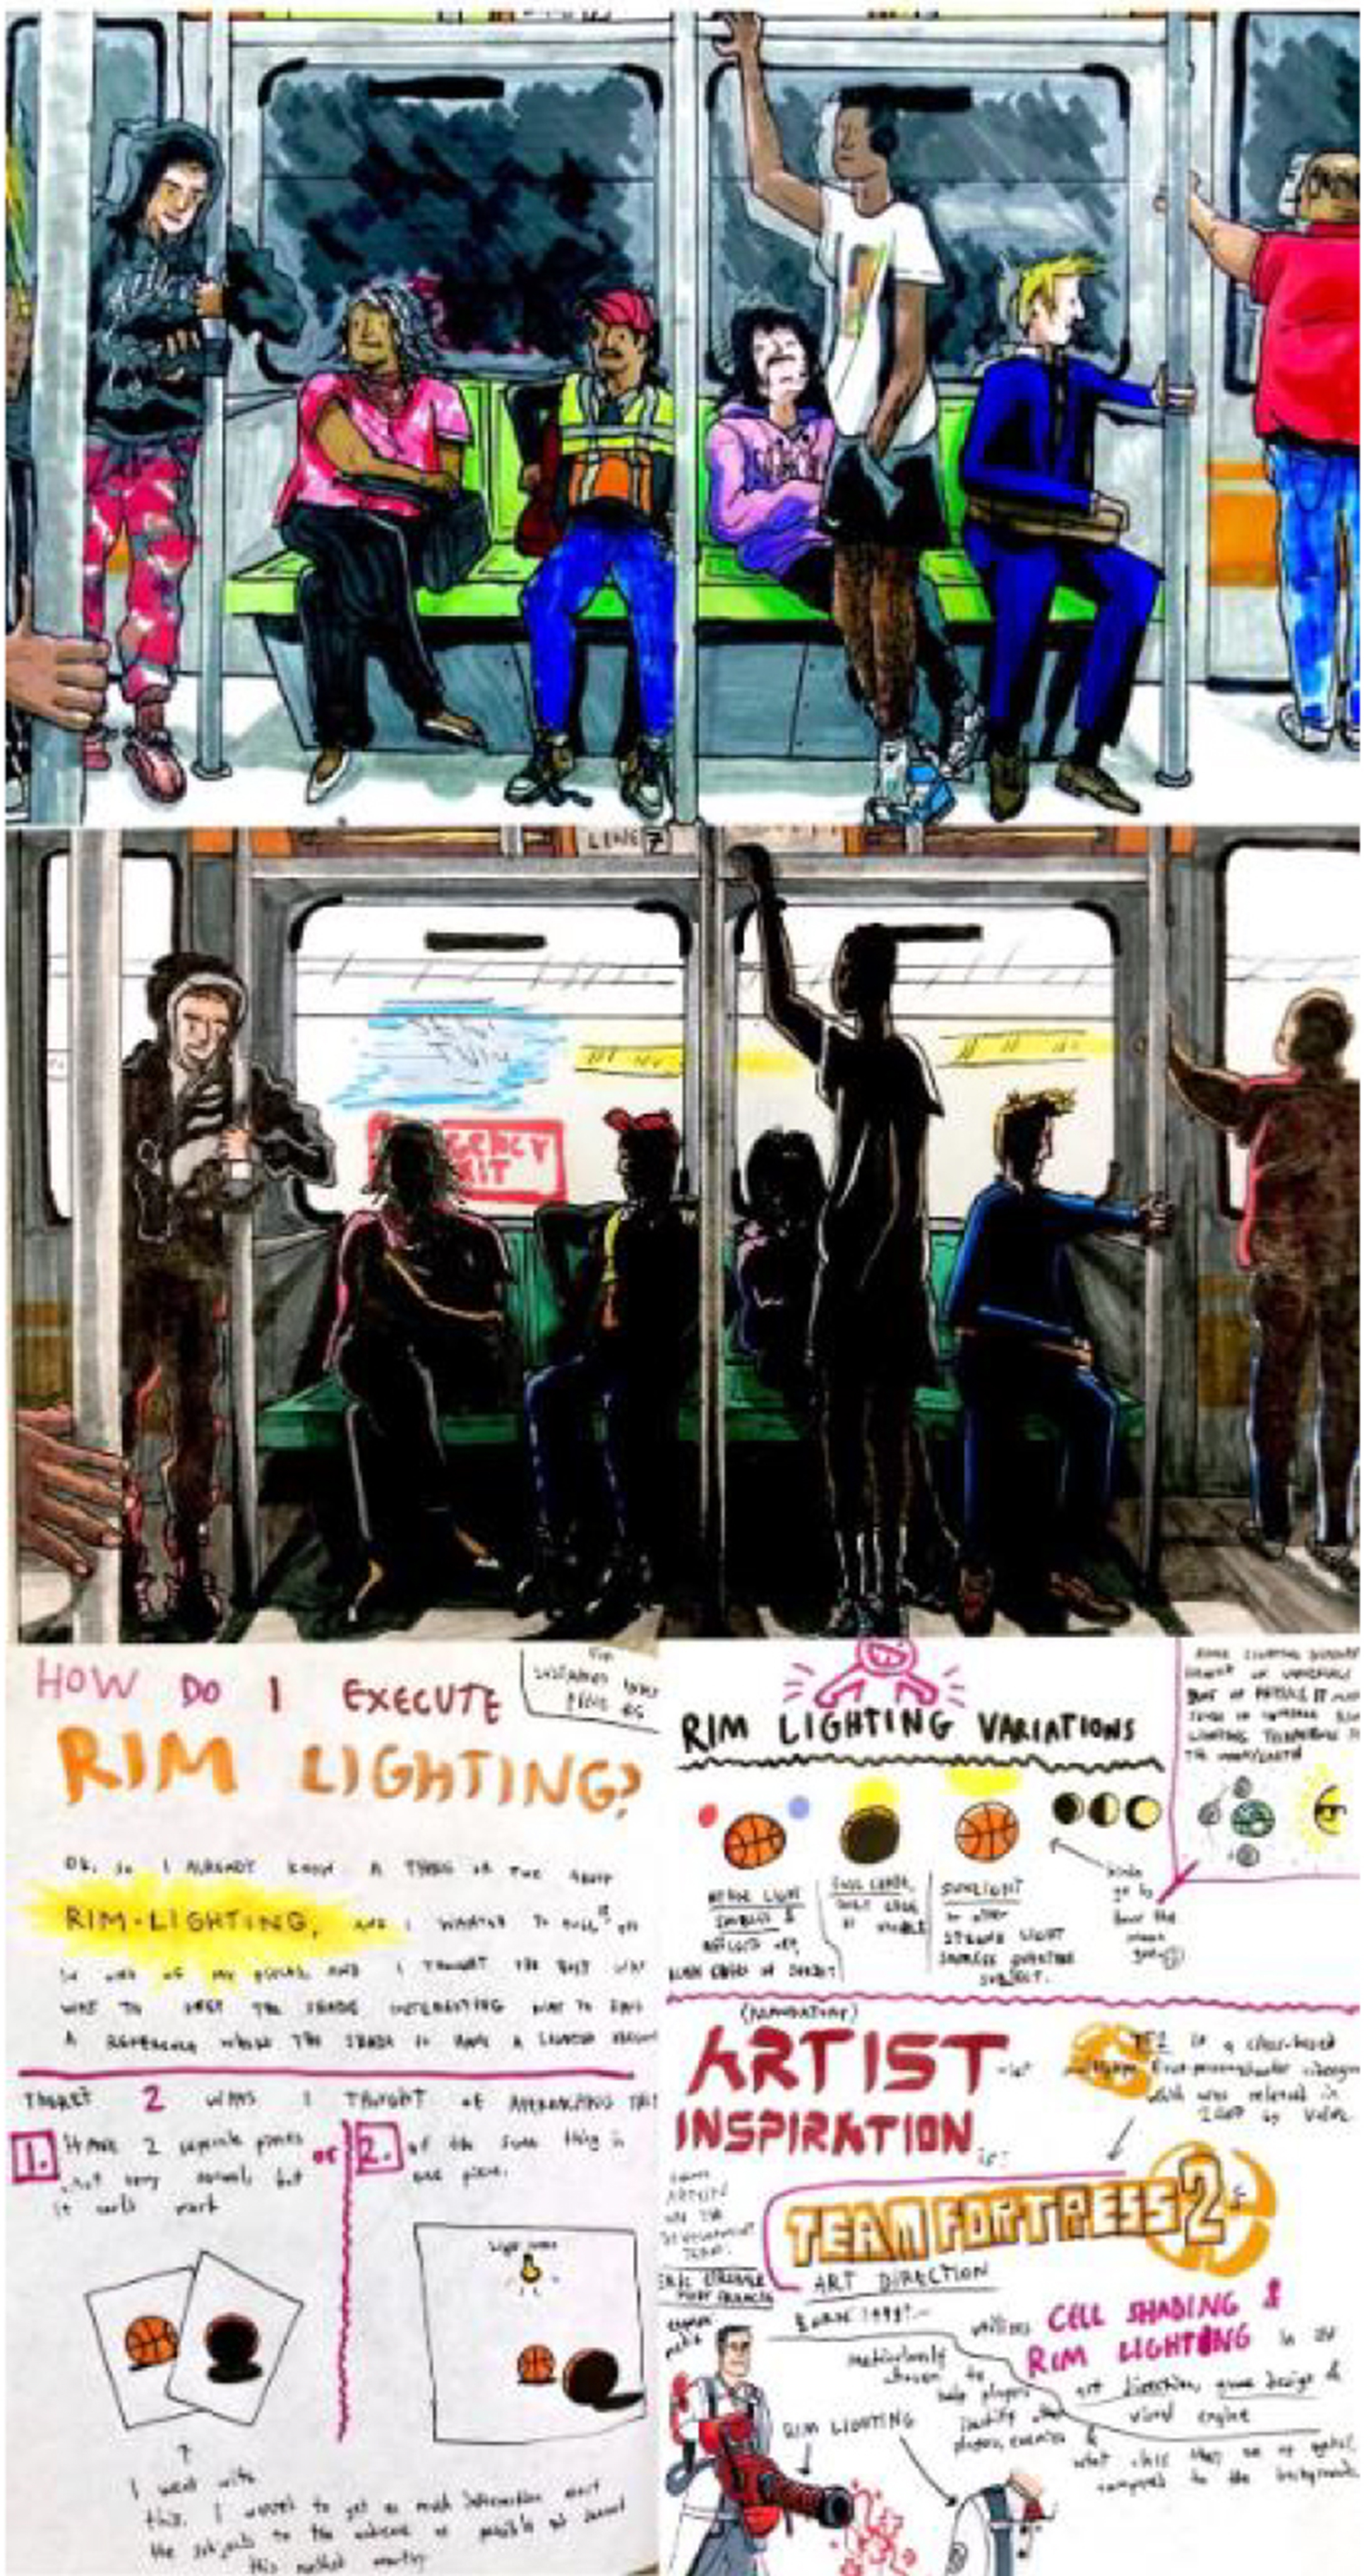 Illustration of two subway scenes stacked on top of each other, one in light the other in darkness and shadow